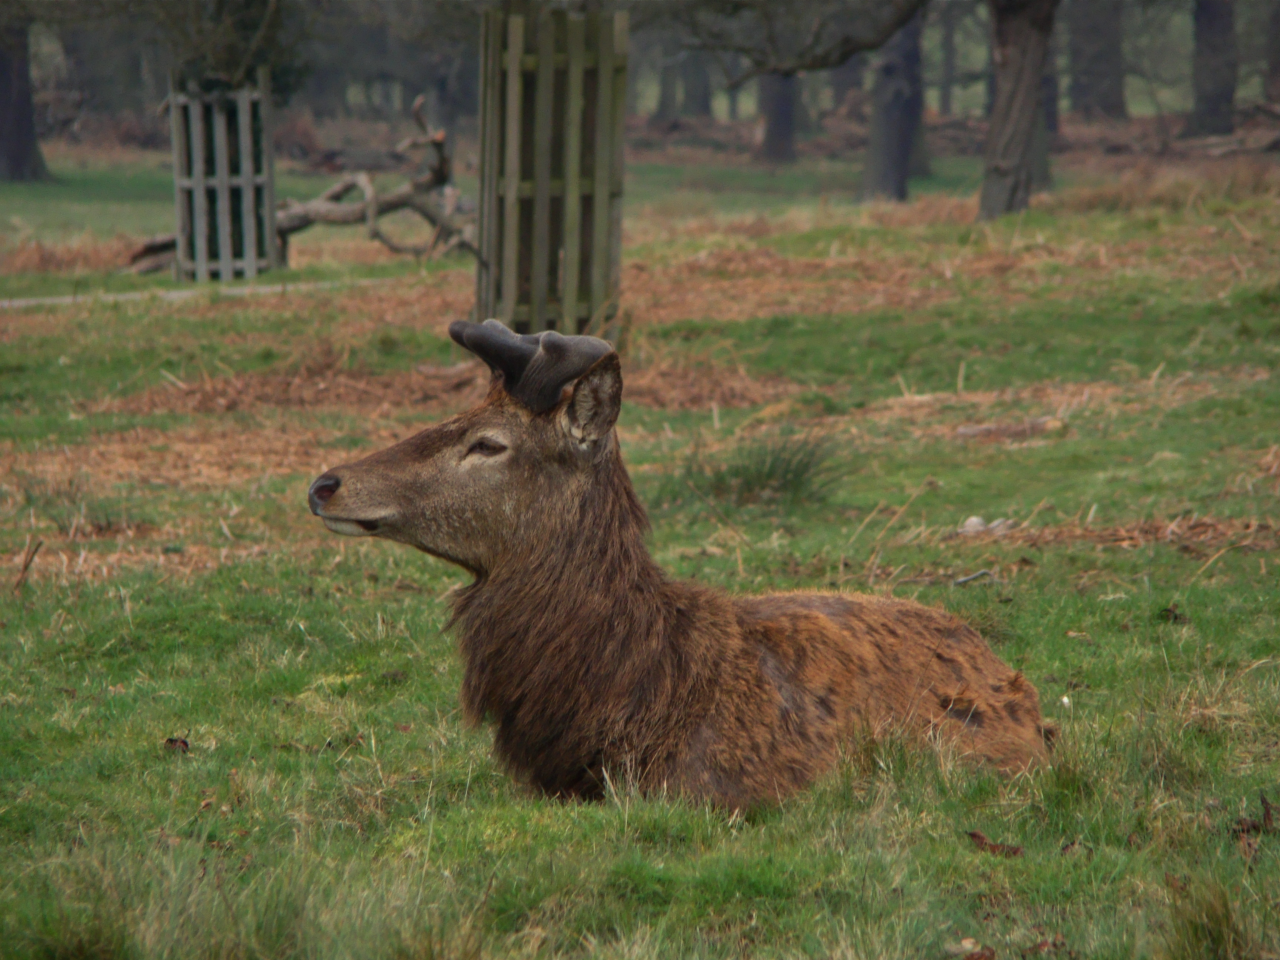 A red deer stag in winter coat with new horns, Richmond Park, London, 3 April 2016